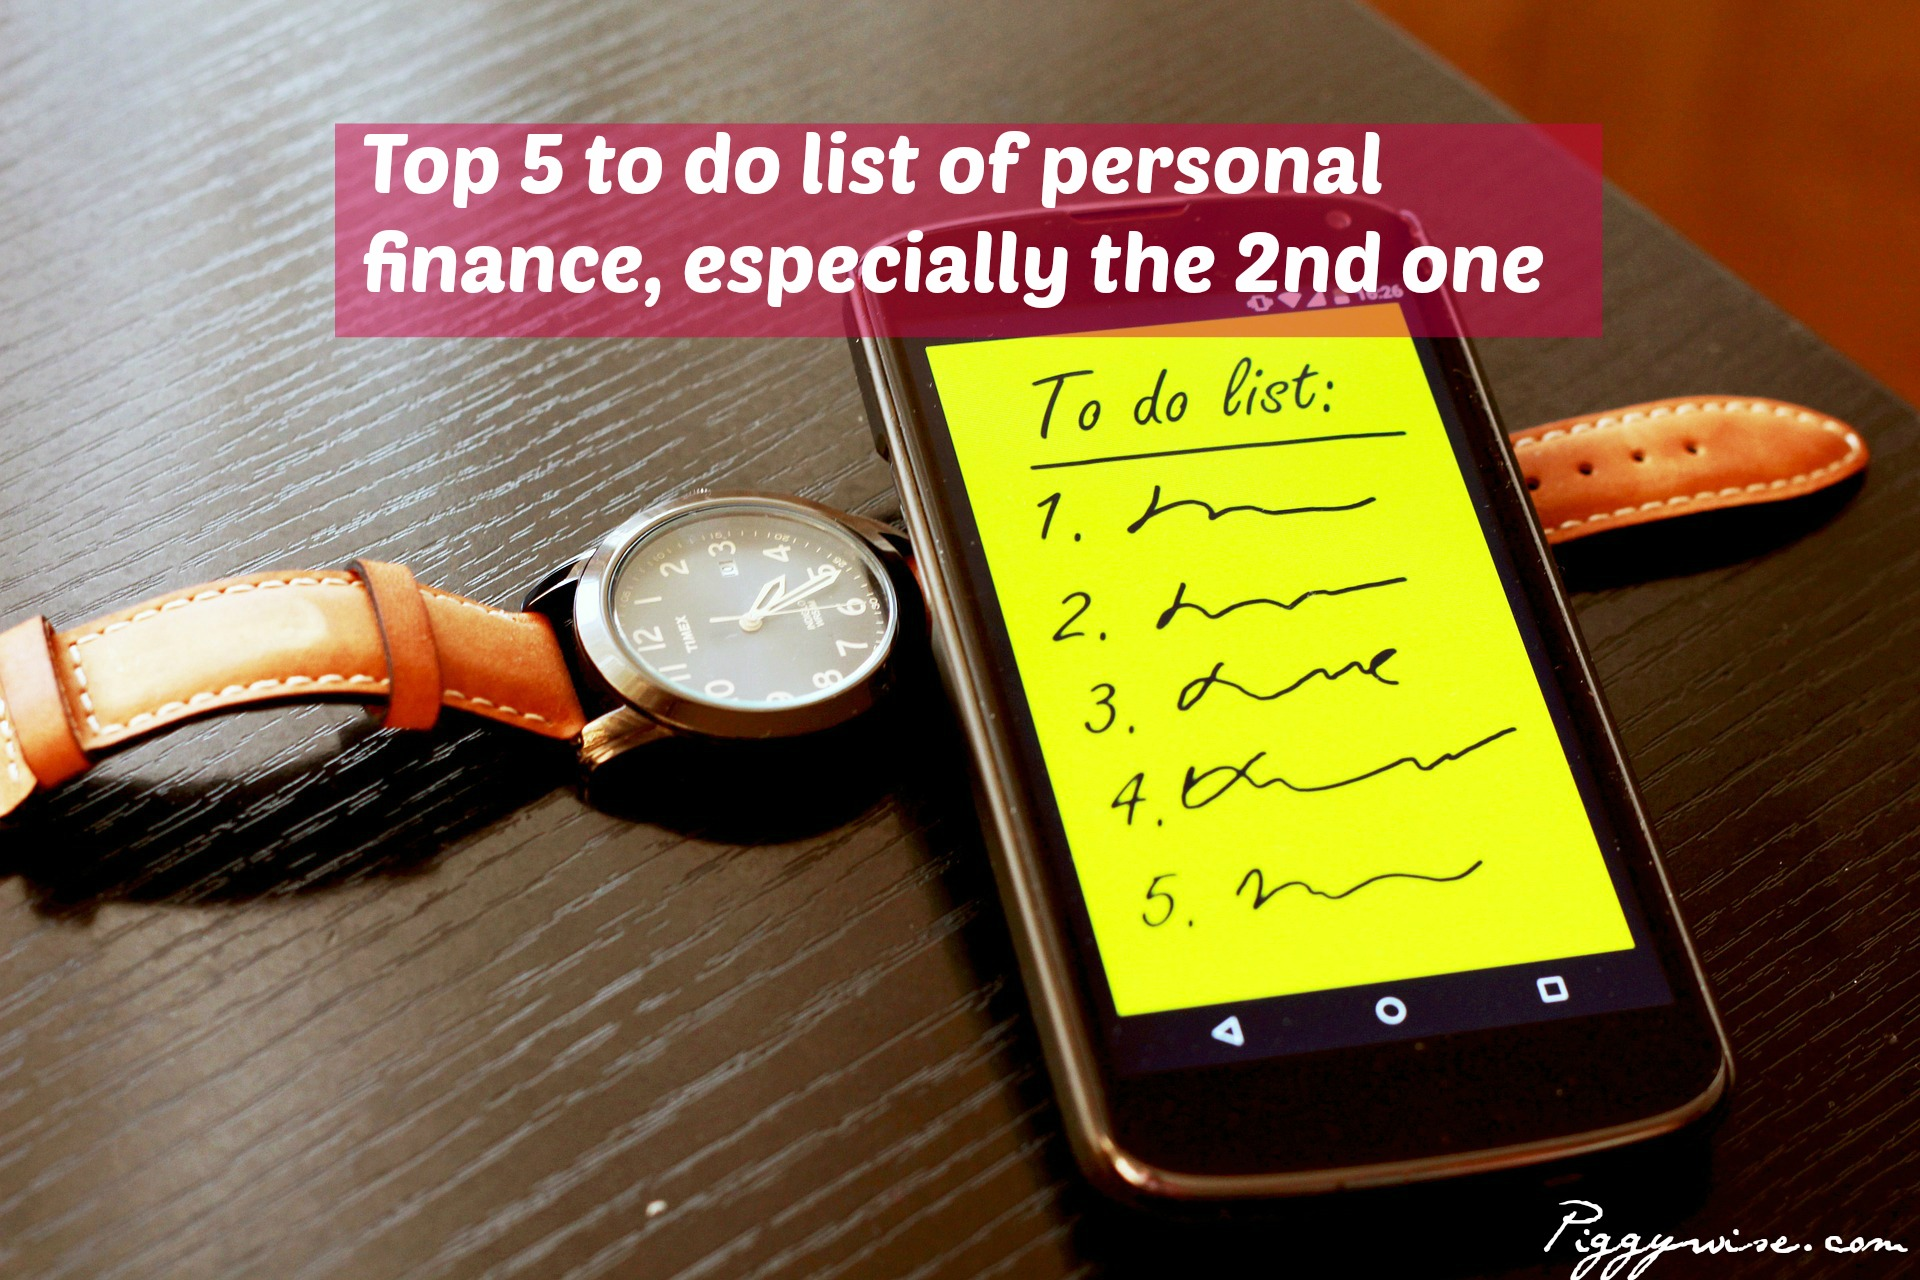 Top 5 To Do List of Personal Finance When Starting Out